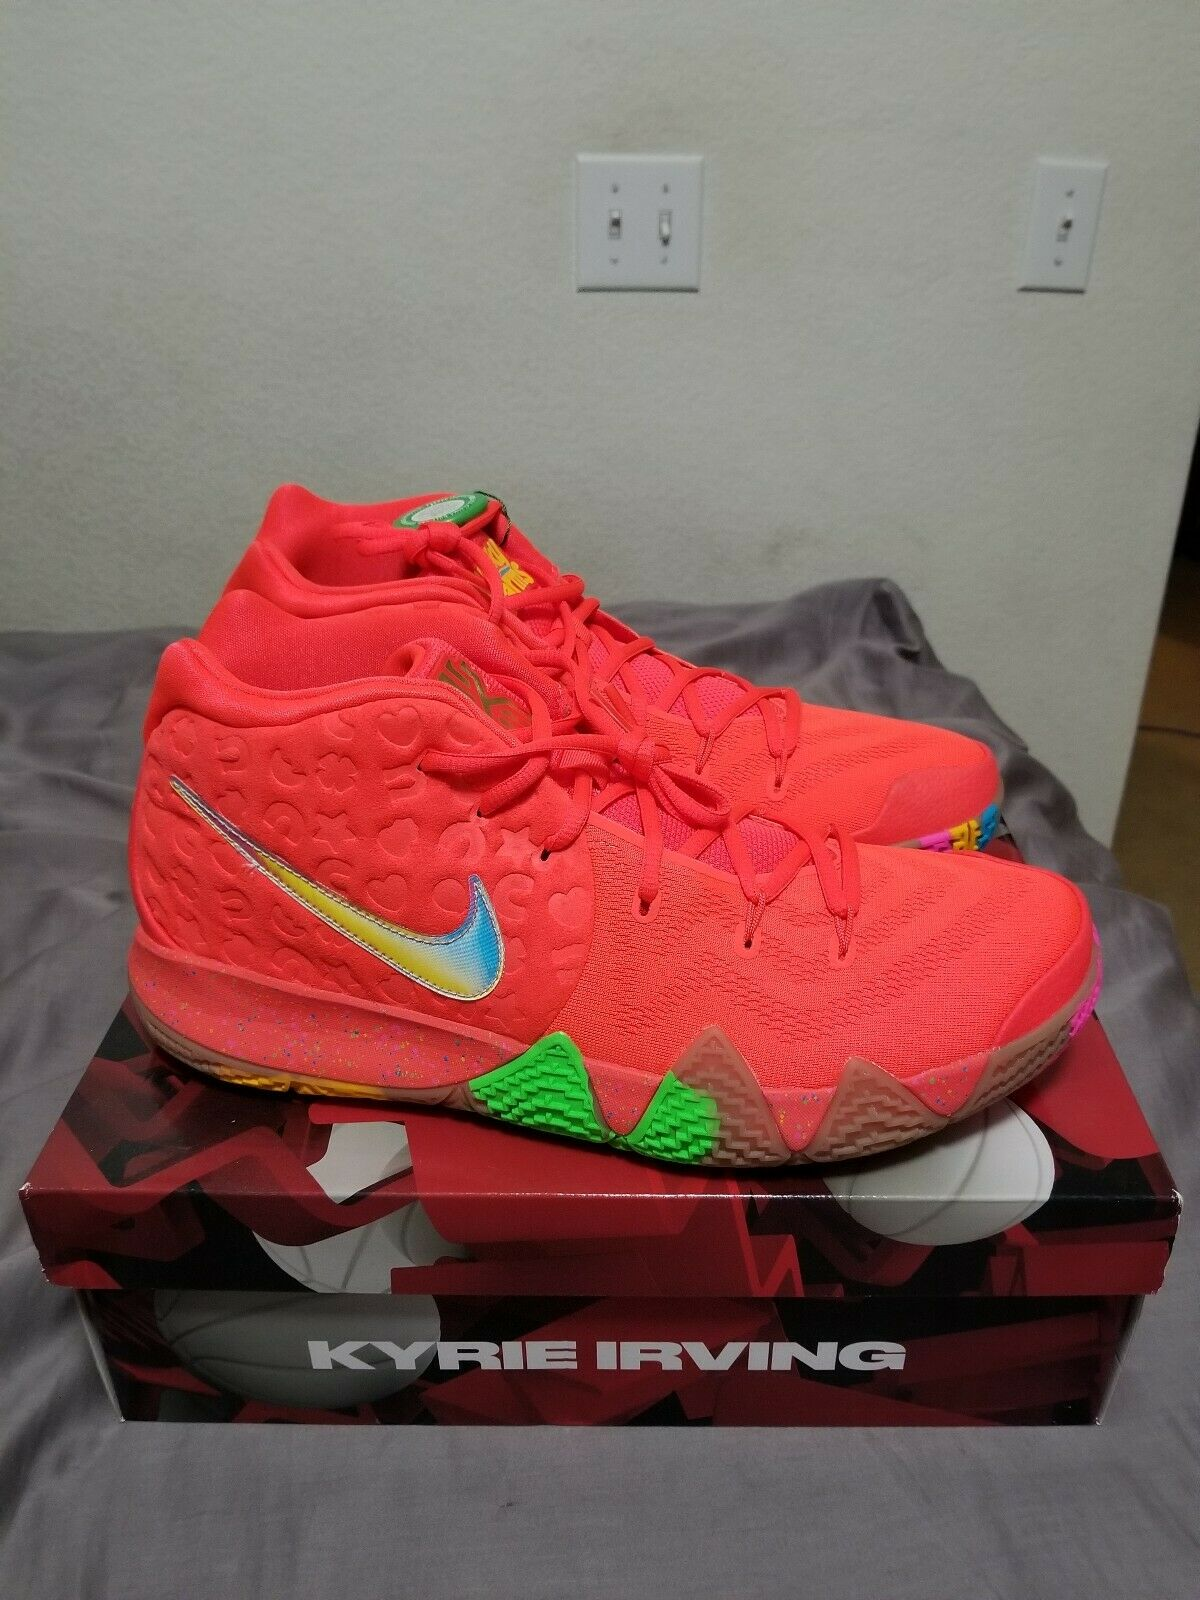 a2b2103e85a6 Nike Nike Nike Kyrie 4 IV Lucky Charms Cereal Pack BV0428-600 Size 14 b7eb46